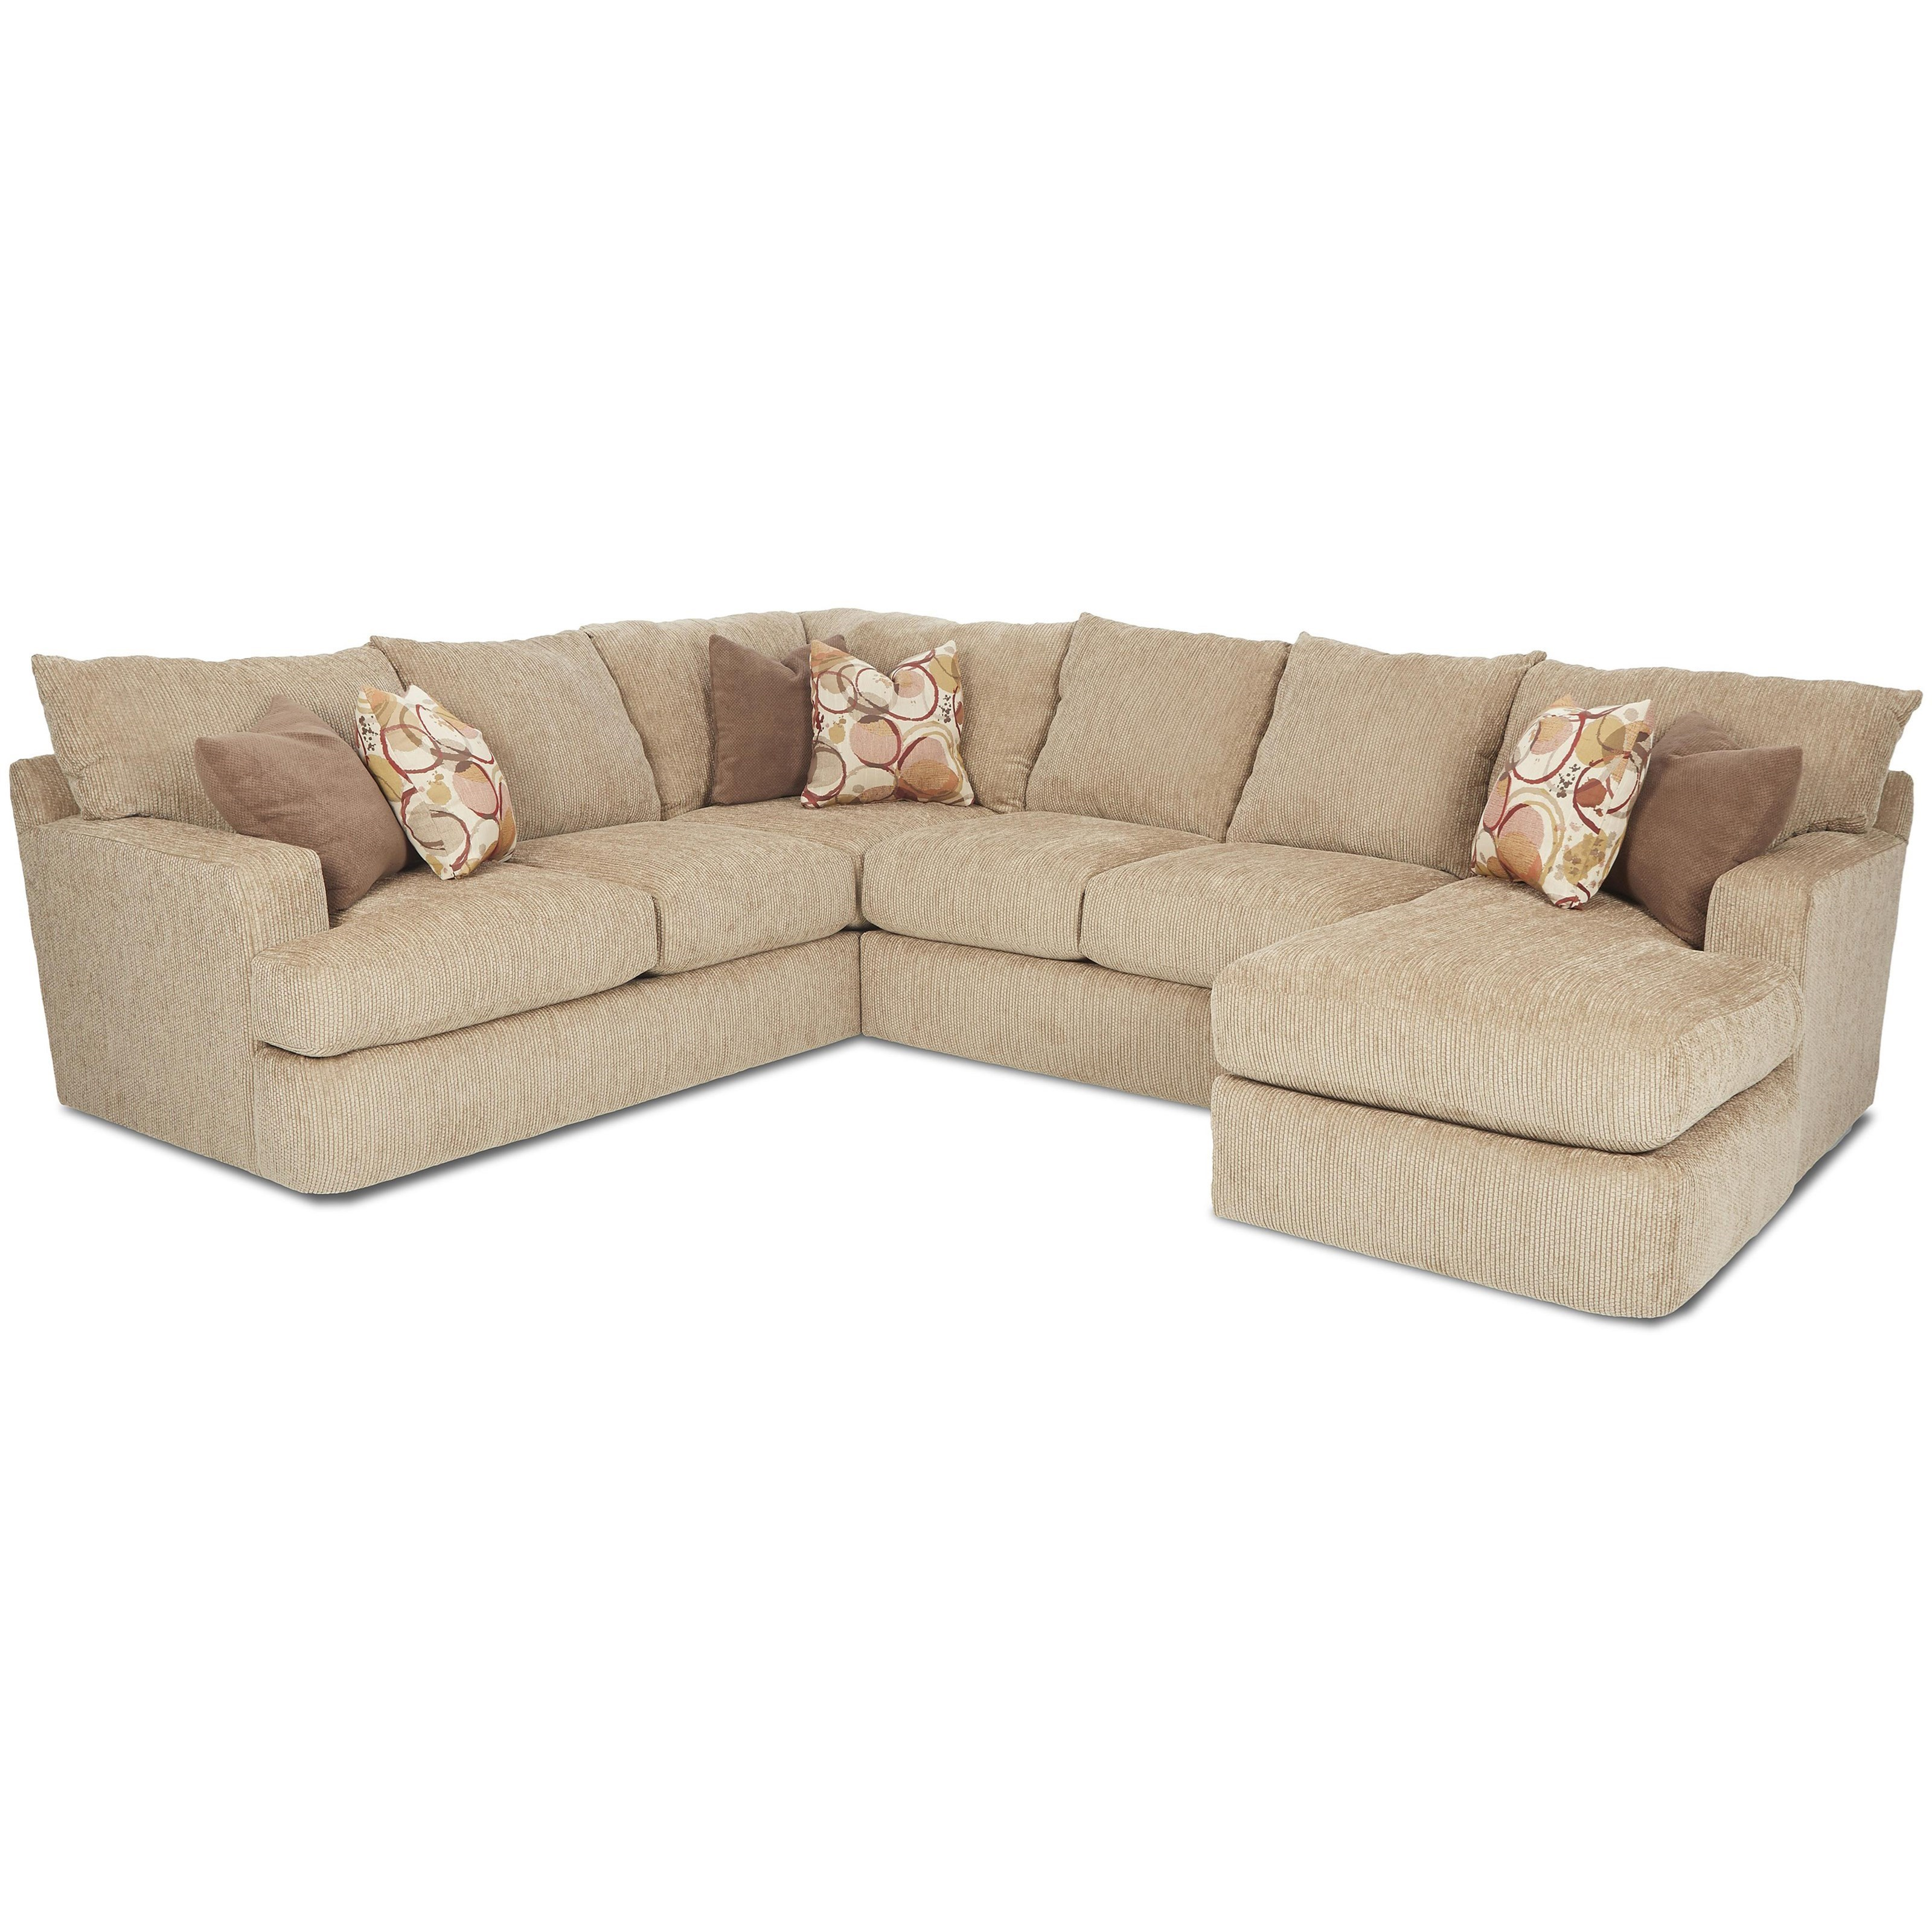 Klaussner Oliver Contemporary Three Piece Sectional Sofa